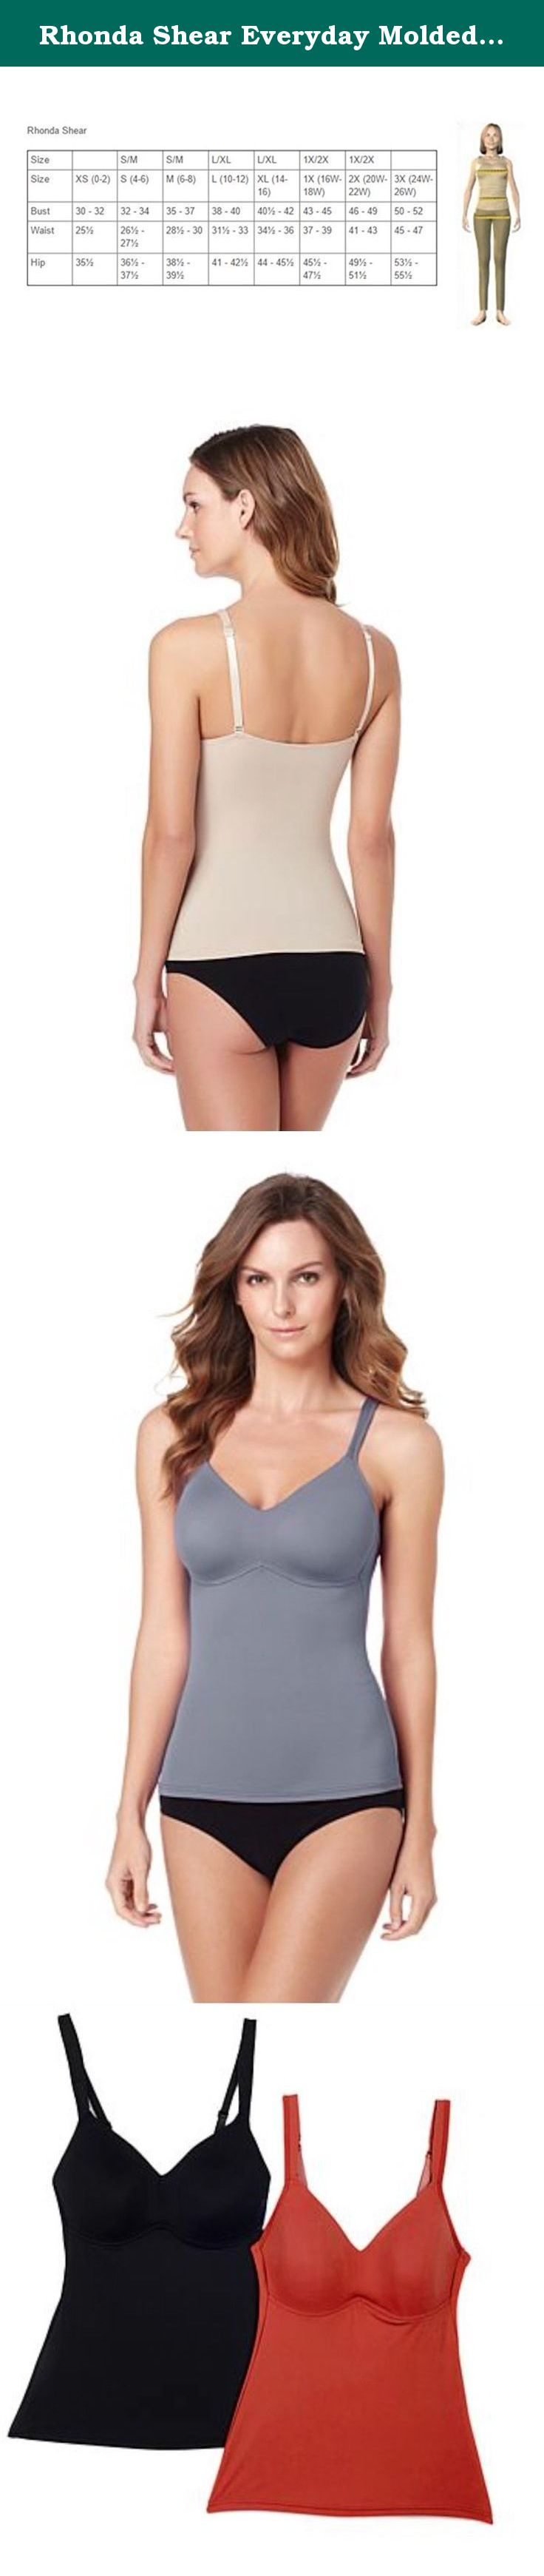 cf8d587156f58 Rhonda Shear Everyday Molded Cup Camisole ~ Rose (3X). Searching for a  secret